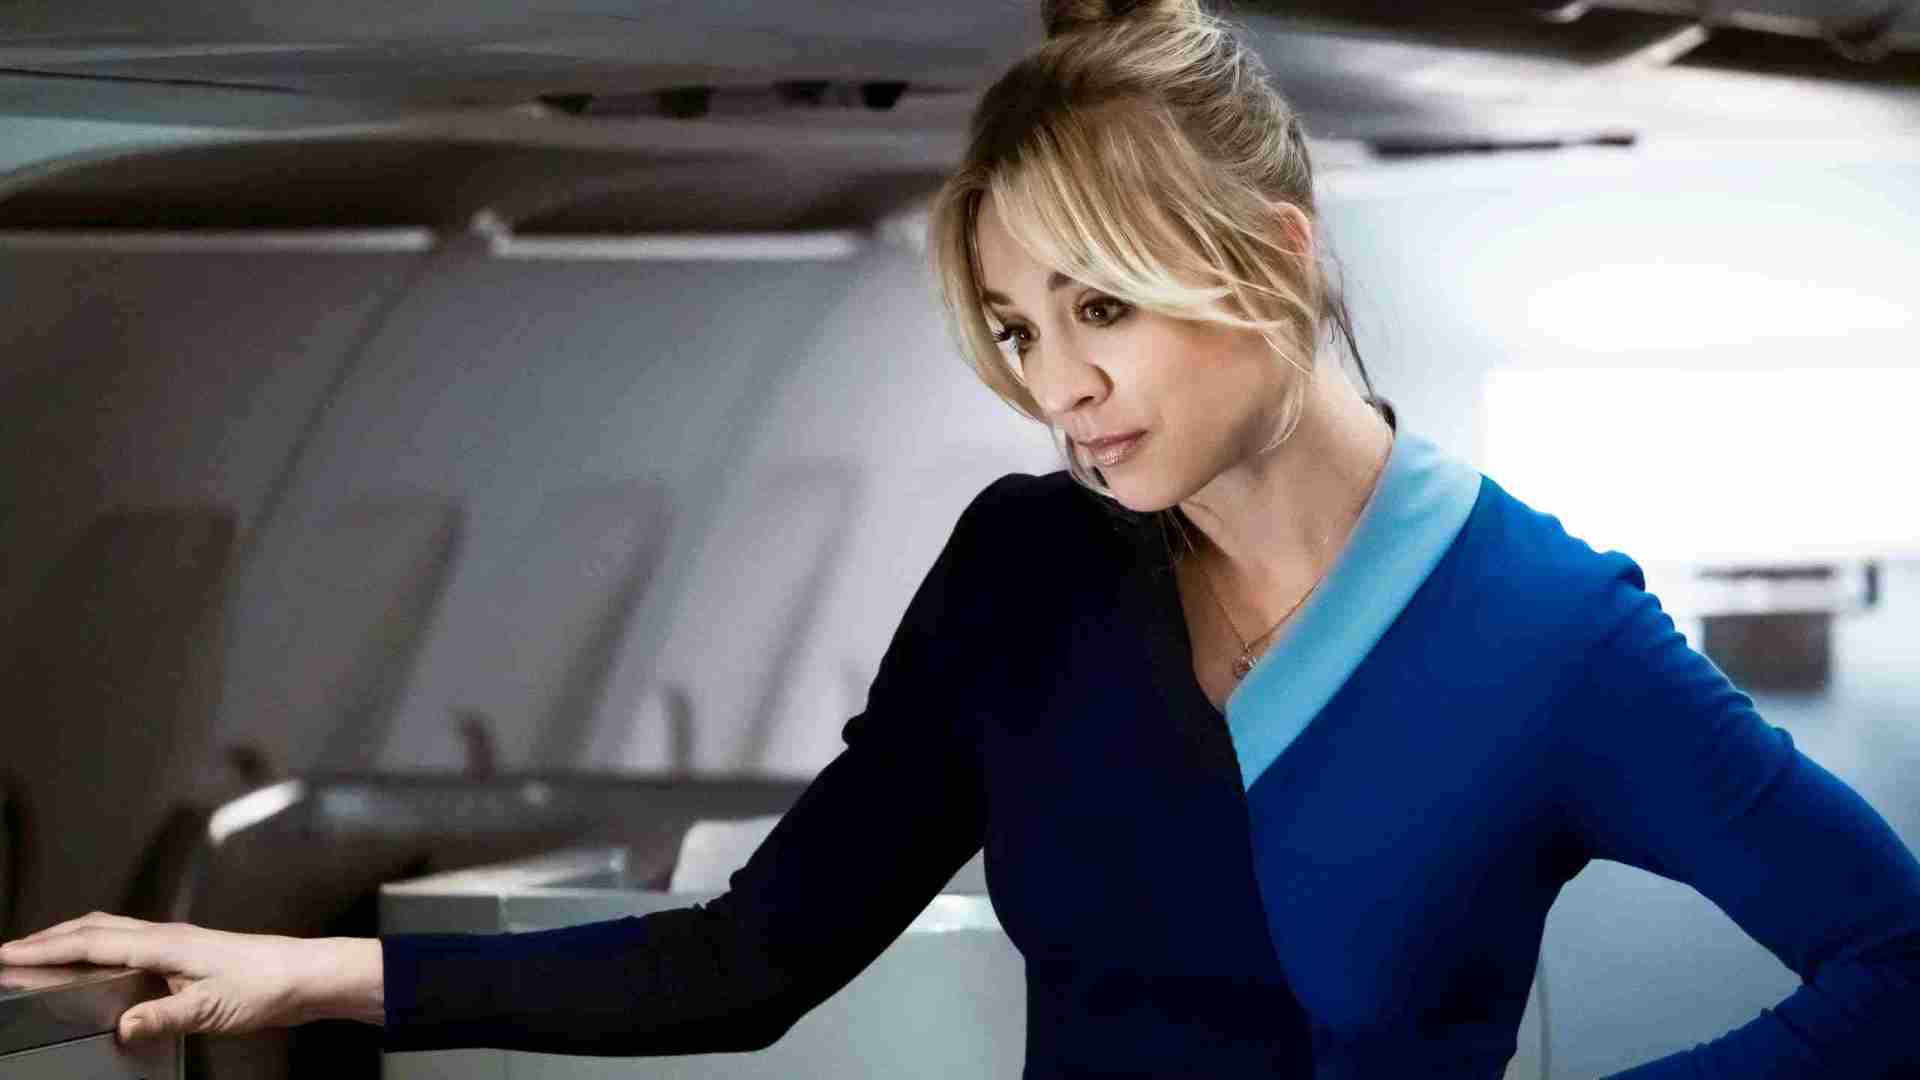 The Flight Attendant (TV series) Analysis - Recklessness That Leads To Consciousness